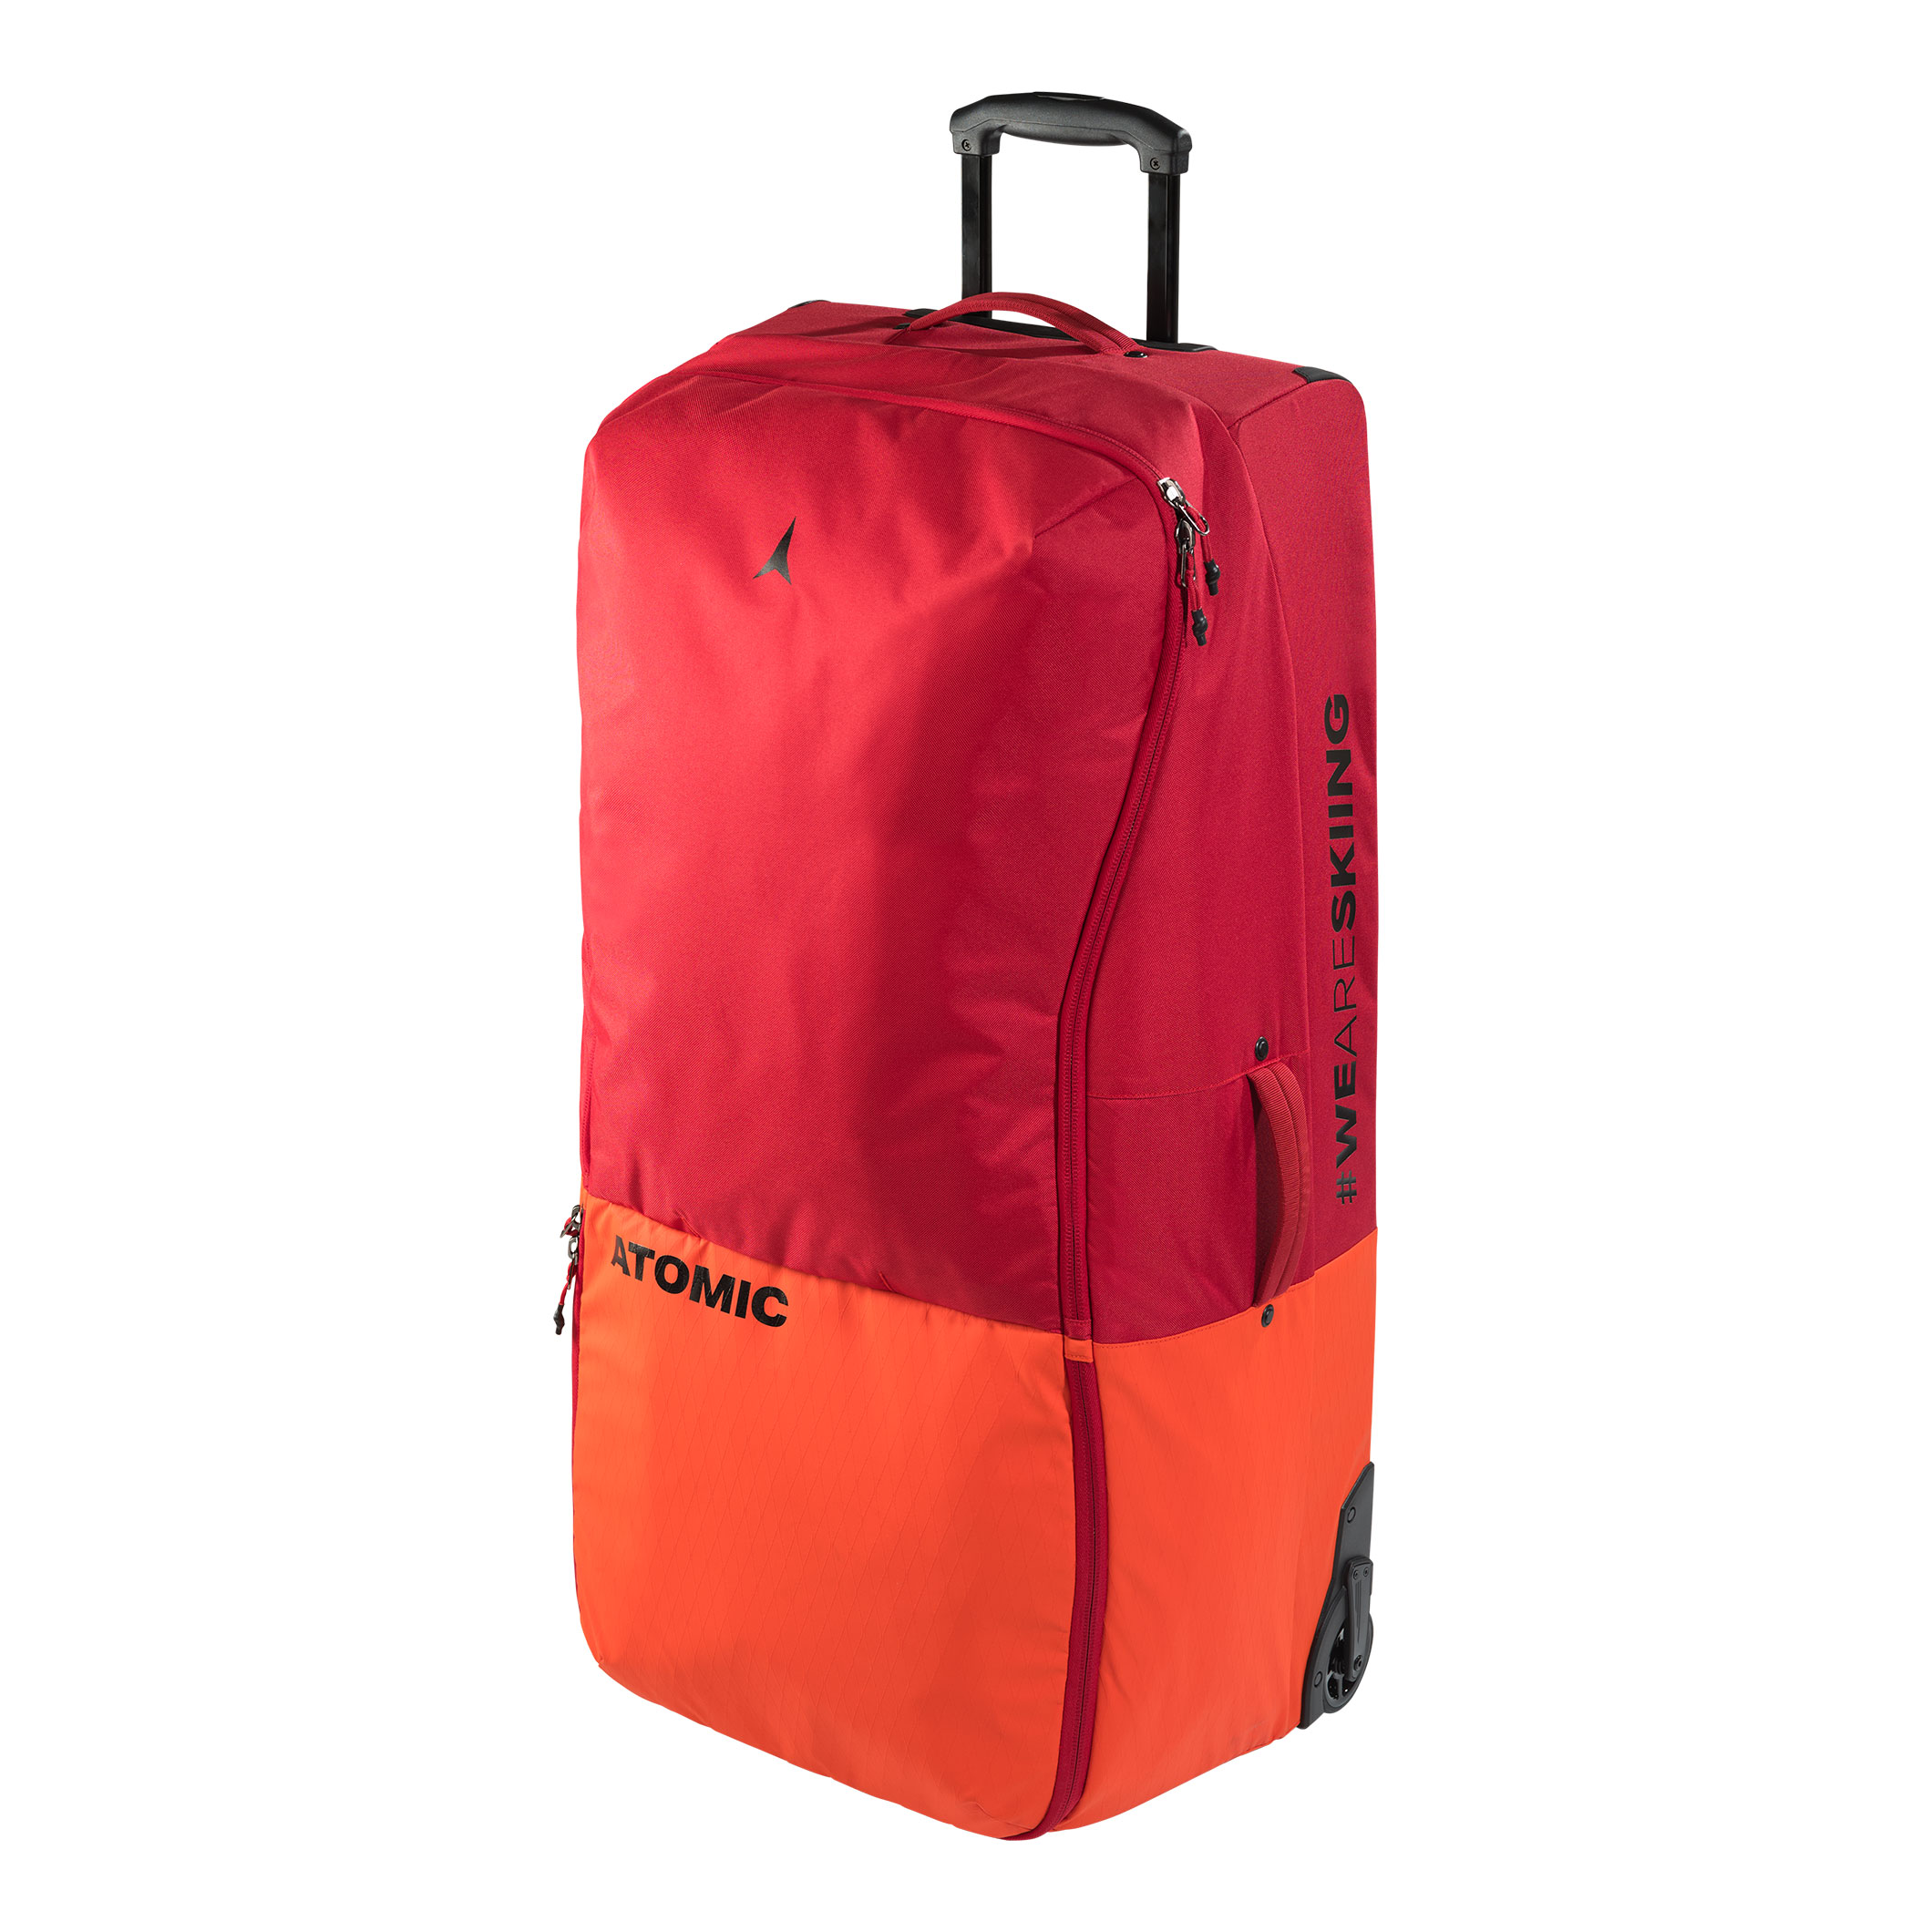 ATOMIC RS TRUNK 130L Red/BRIGHT RED - 2018